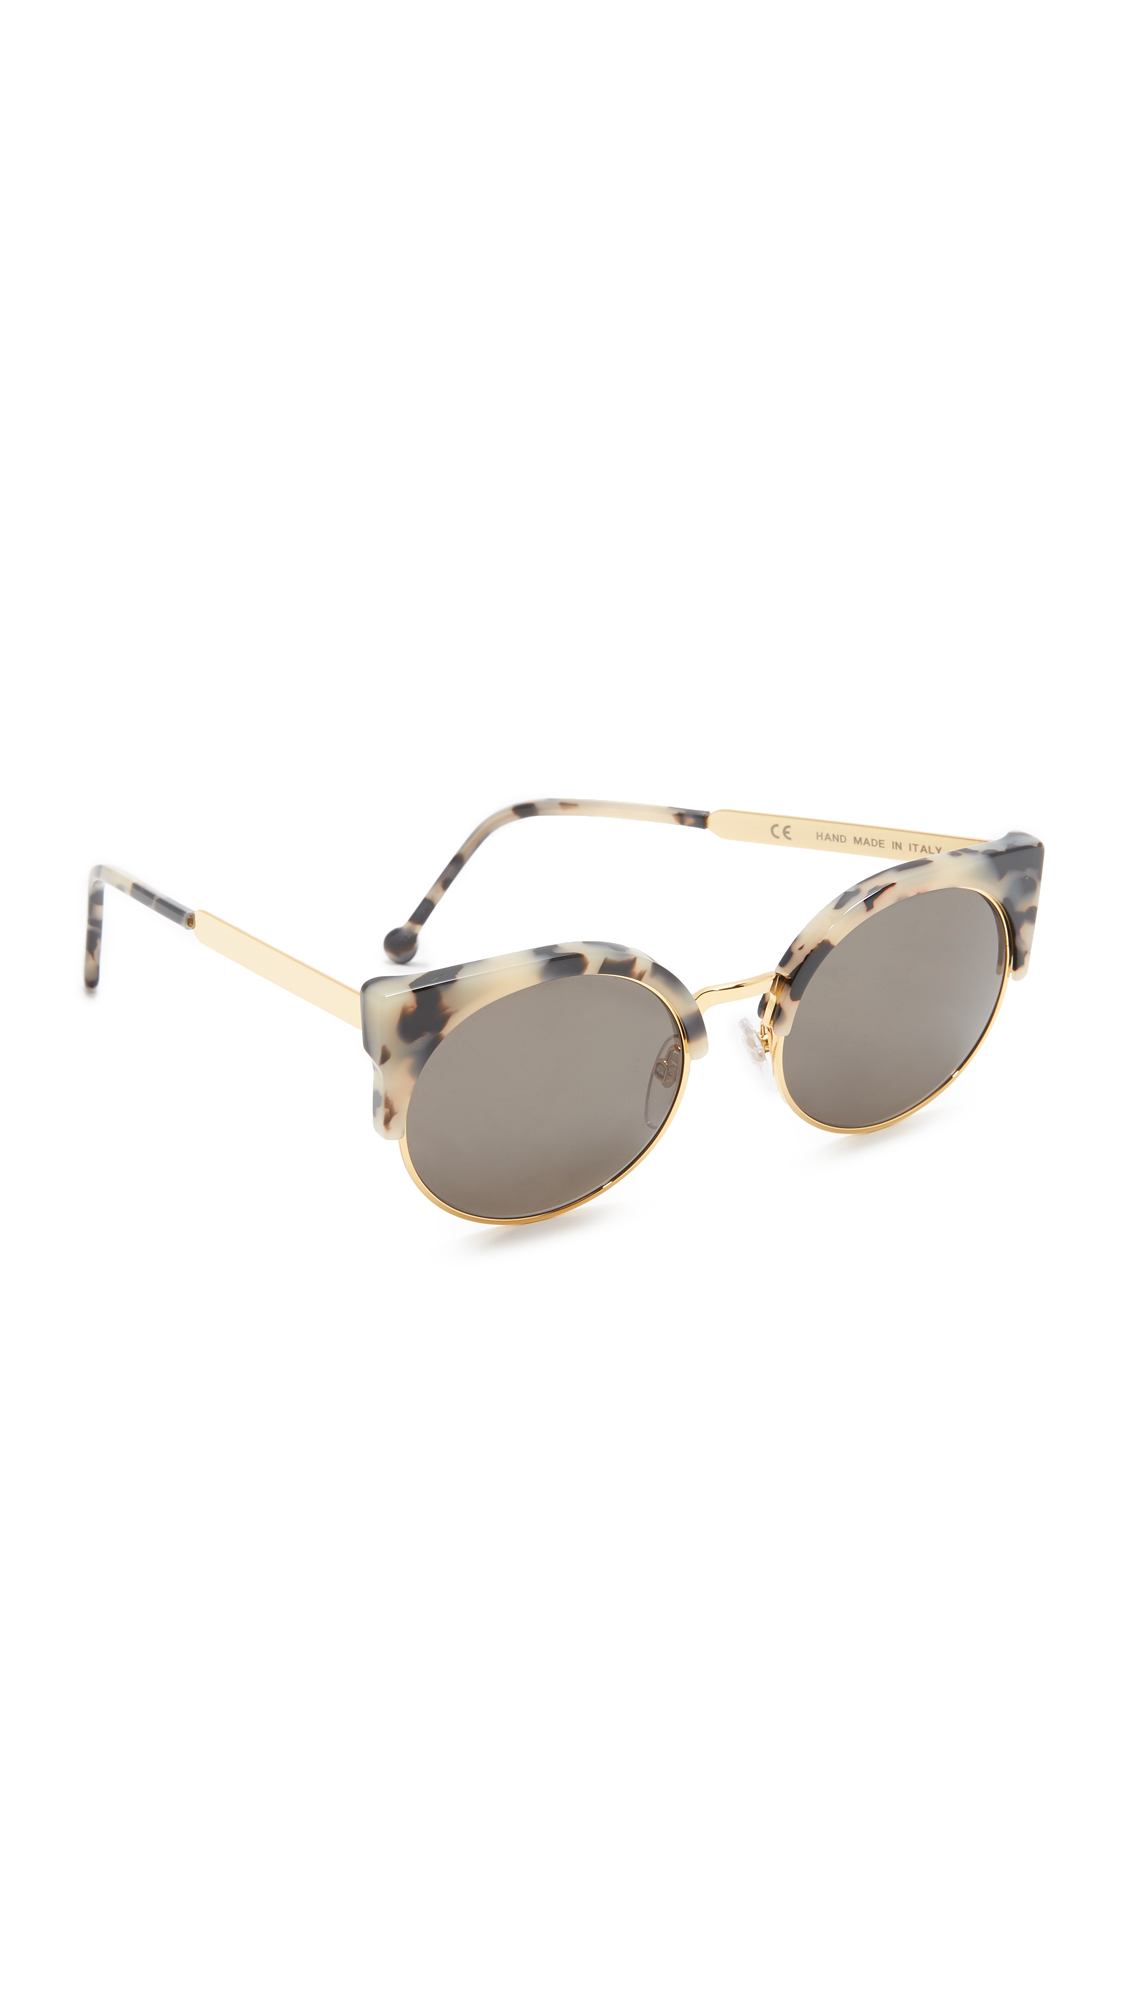 Retro inspired Super Sunglasses in a mix of polished metal and tortoiseshell acetate. Case and cleaning cloth included. Semi rimless frame. Non polarized lenses. Made in Italy. Measurements Width: 5.25in / 13.5cm Height: 2in / 5cm Lens Width: 55